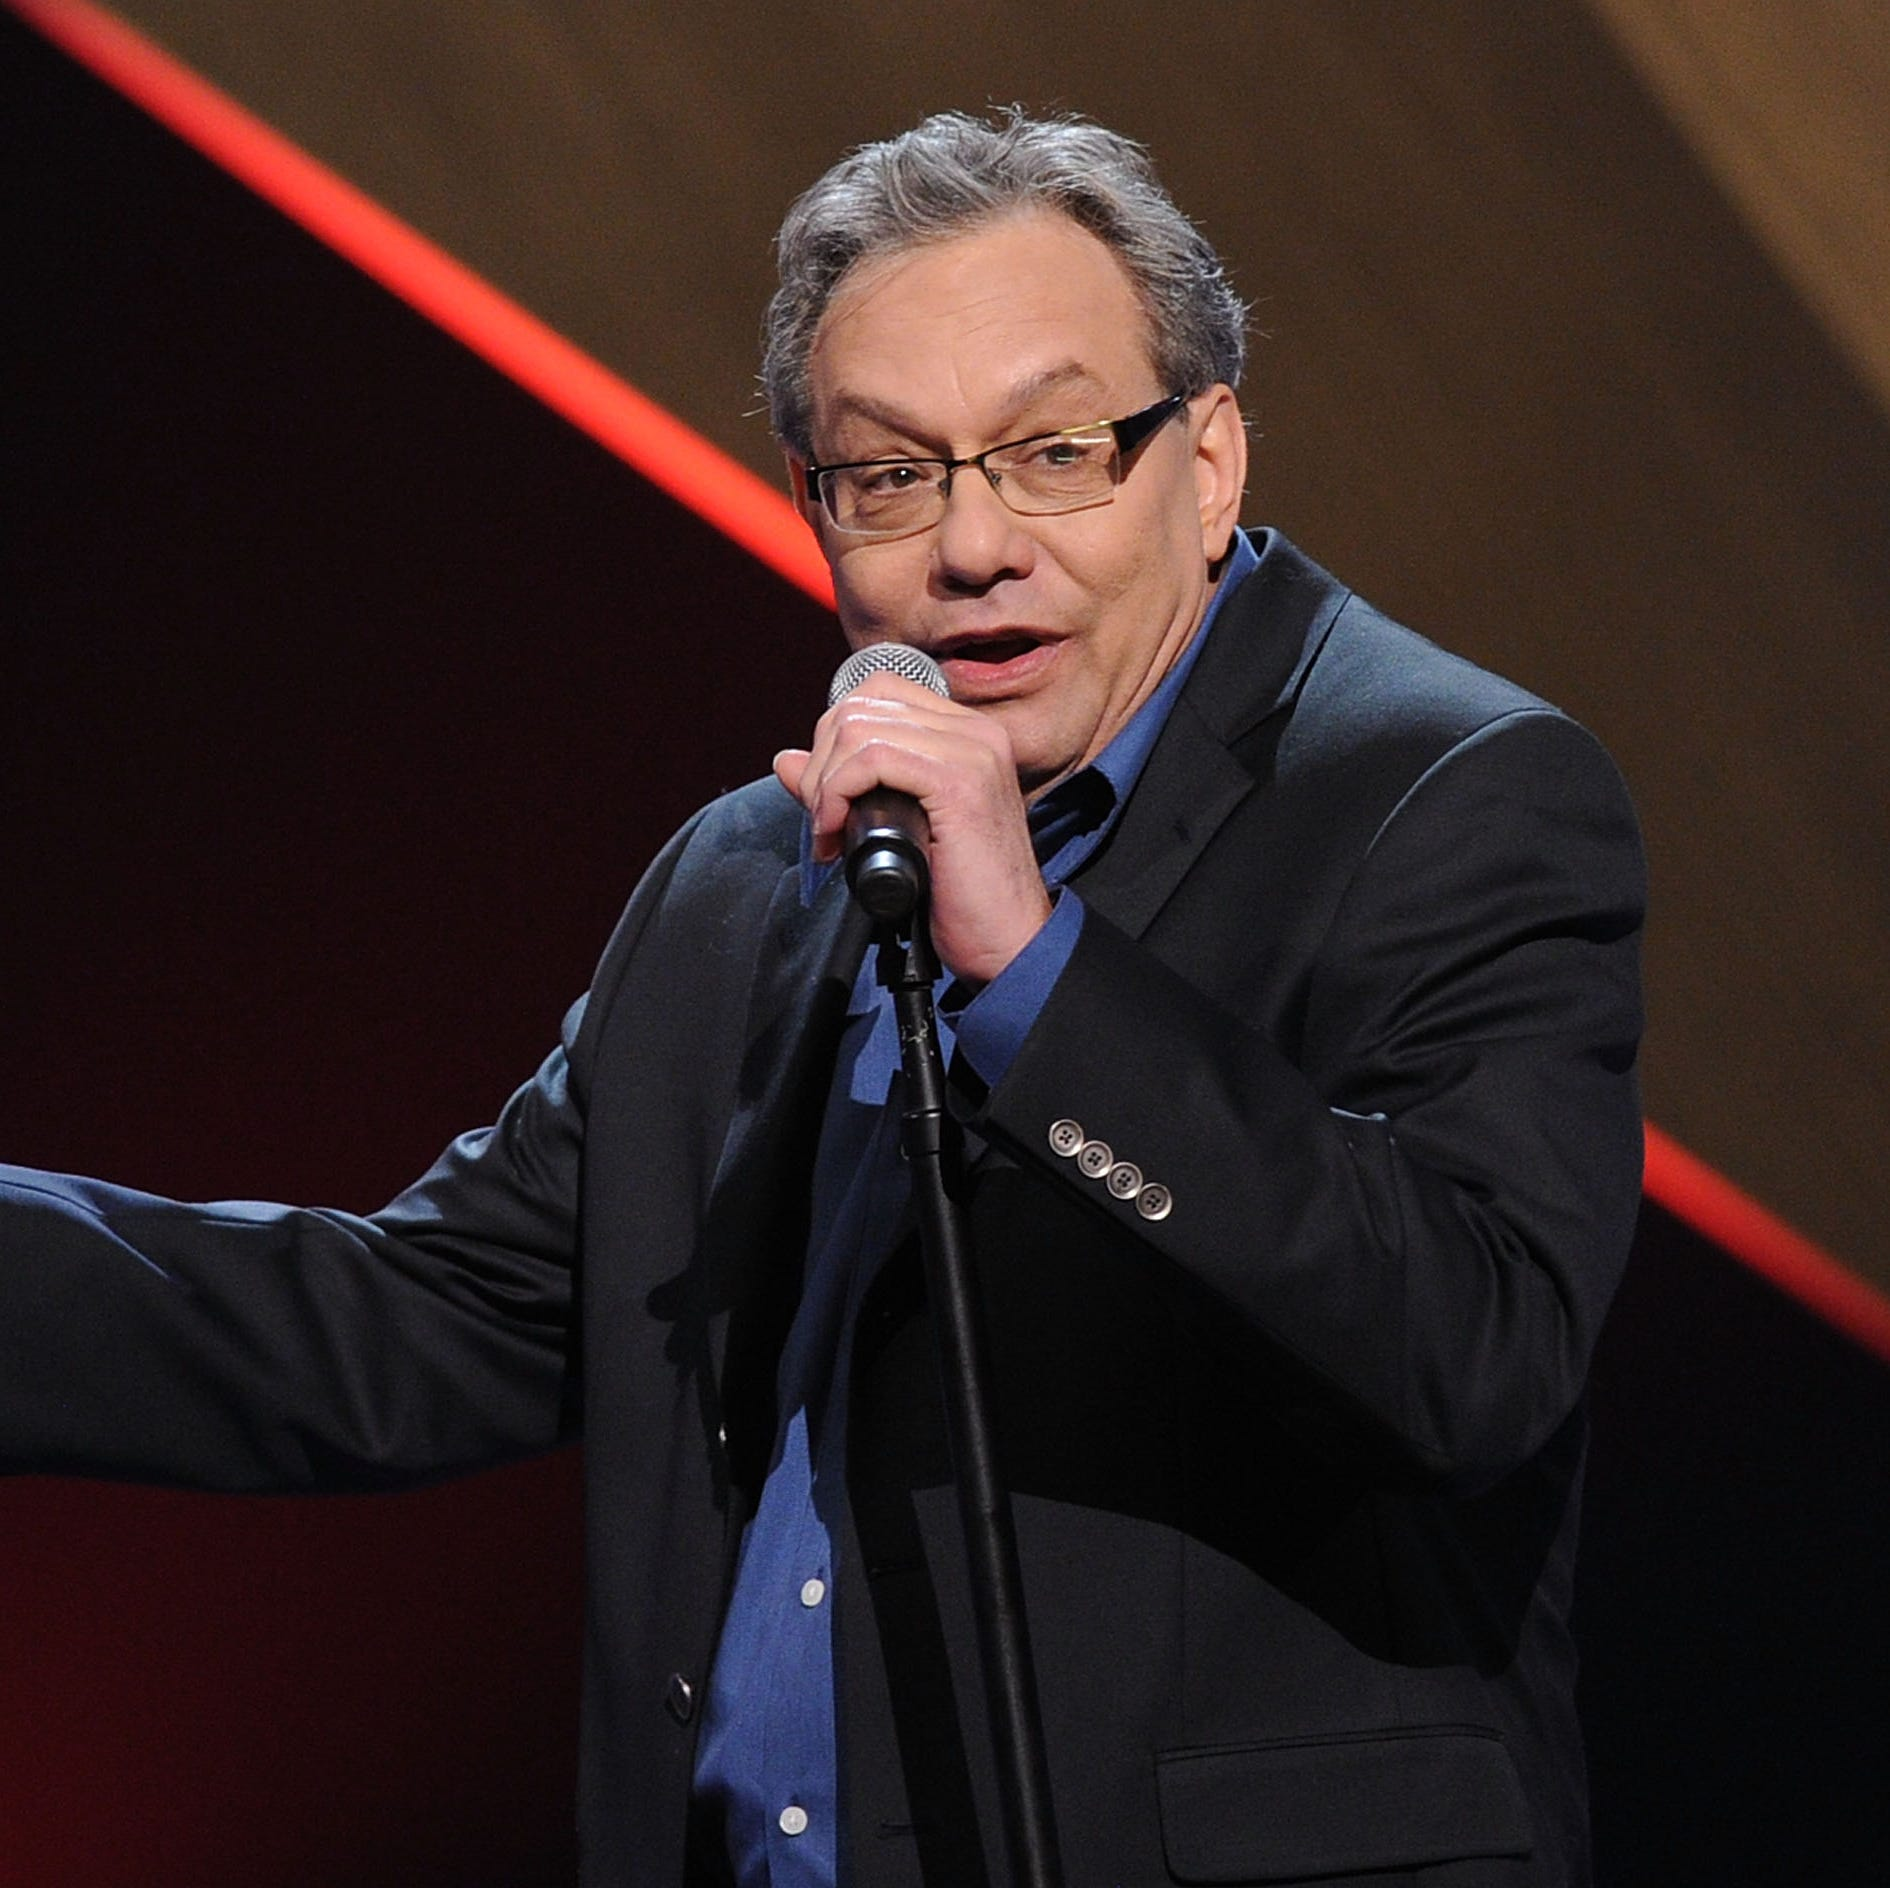 Ready to rant: Lewis Black will return to Weidner Center for first time since 2012